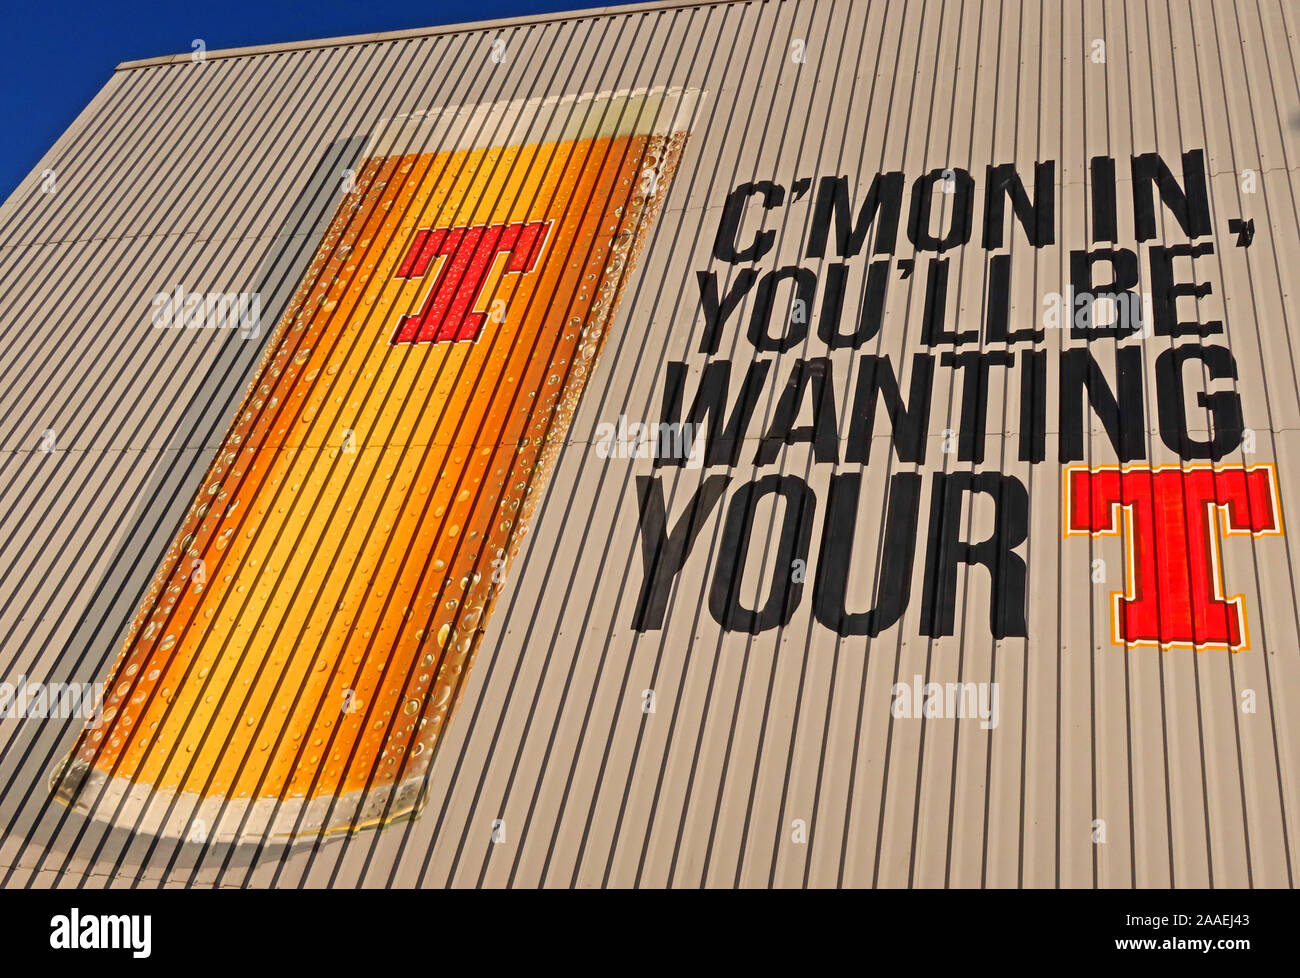 GotonySmith,UK,city,city centre,HotpixUK,@HotpixUK,beverage,beer,G31 1JD,G31,Duke Street,Duke St,on side of Wellpark Brewery,161 Duke St,Glasgow,lager,on side of,giant,can of lager,can of tennents,Cmon in,Youll be wanting your T,advert,promotion,Scottish,brewing,brewery,Glass of lager,Glass or Tennents,C&C Group